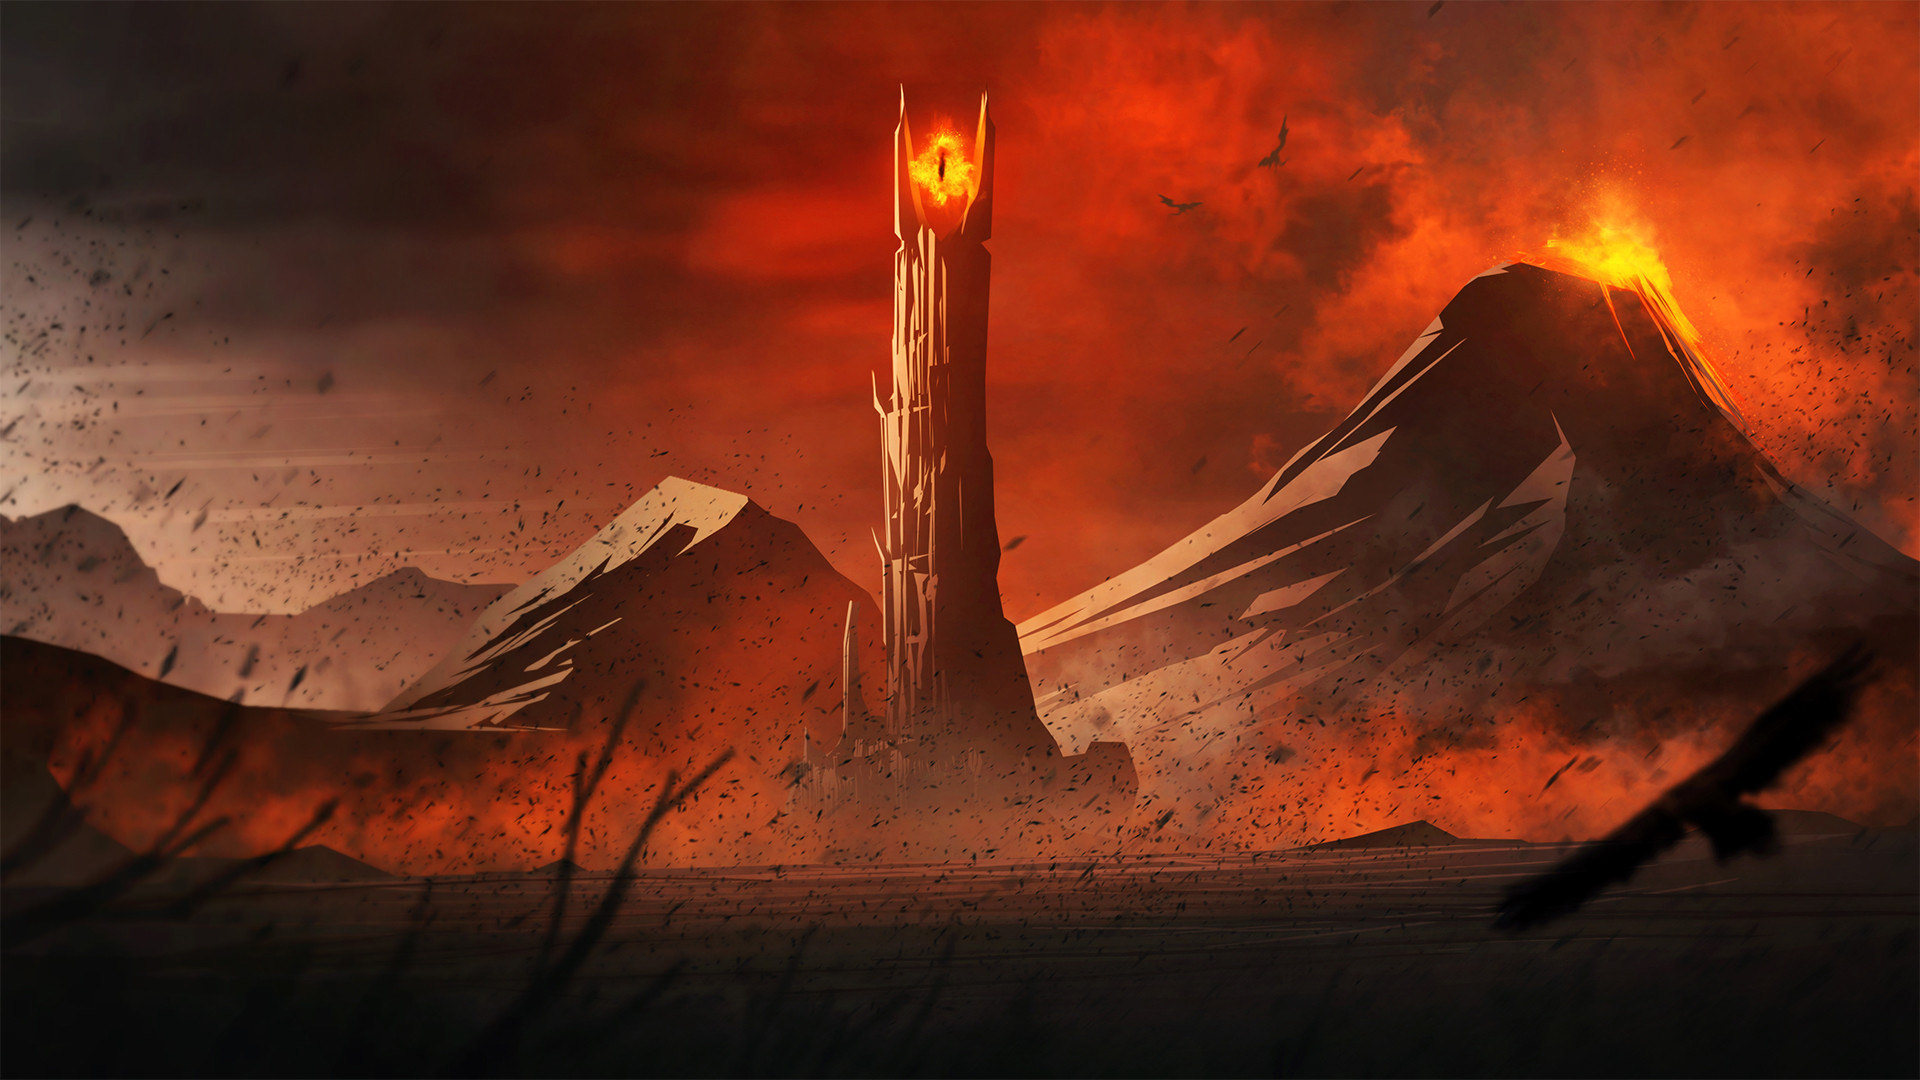 Lord Of The Rings Mountain Eye Of Sauron